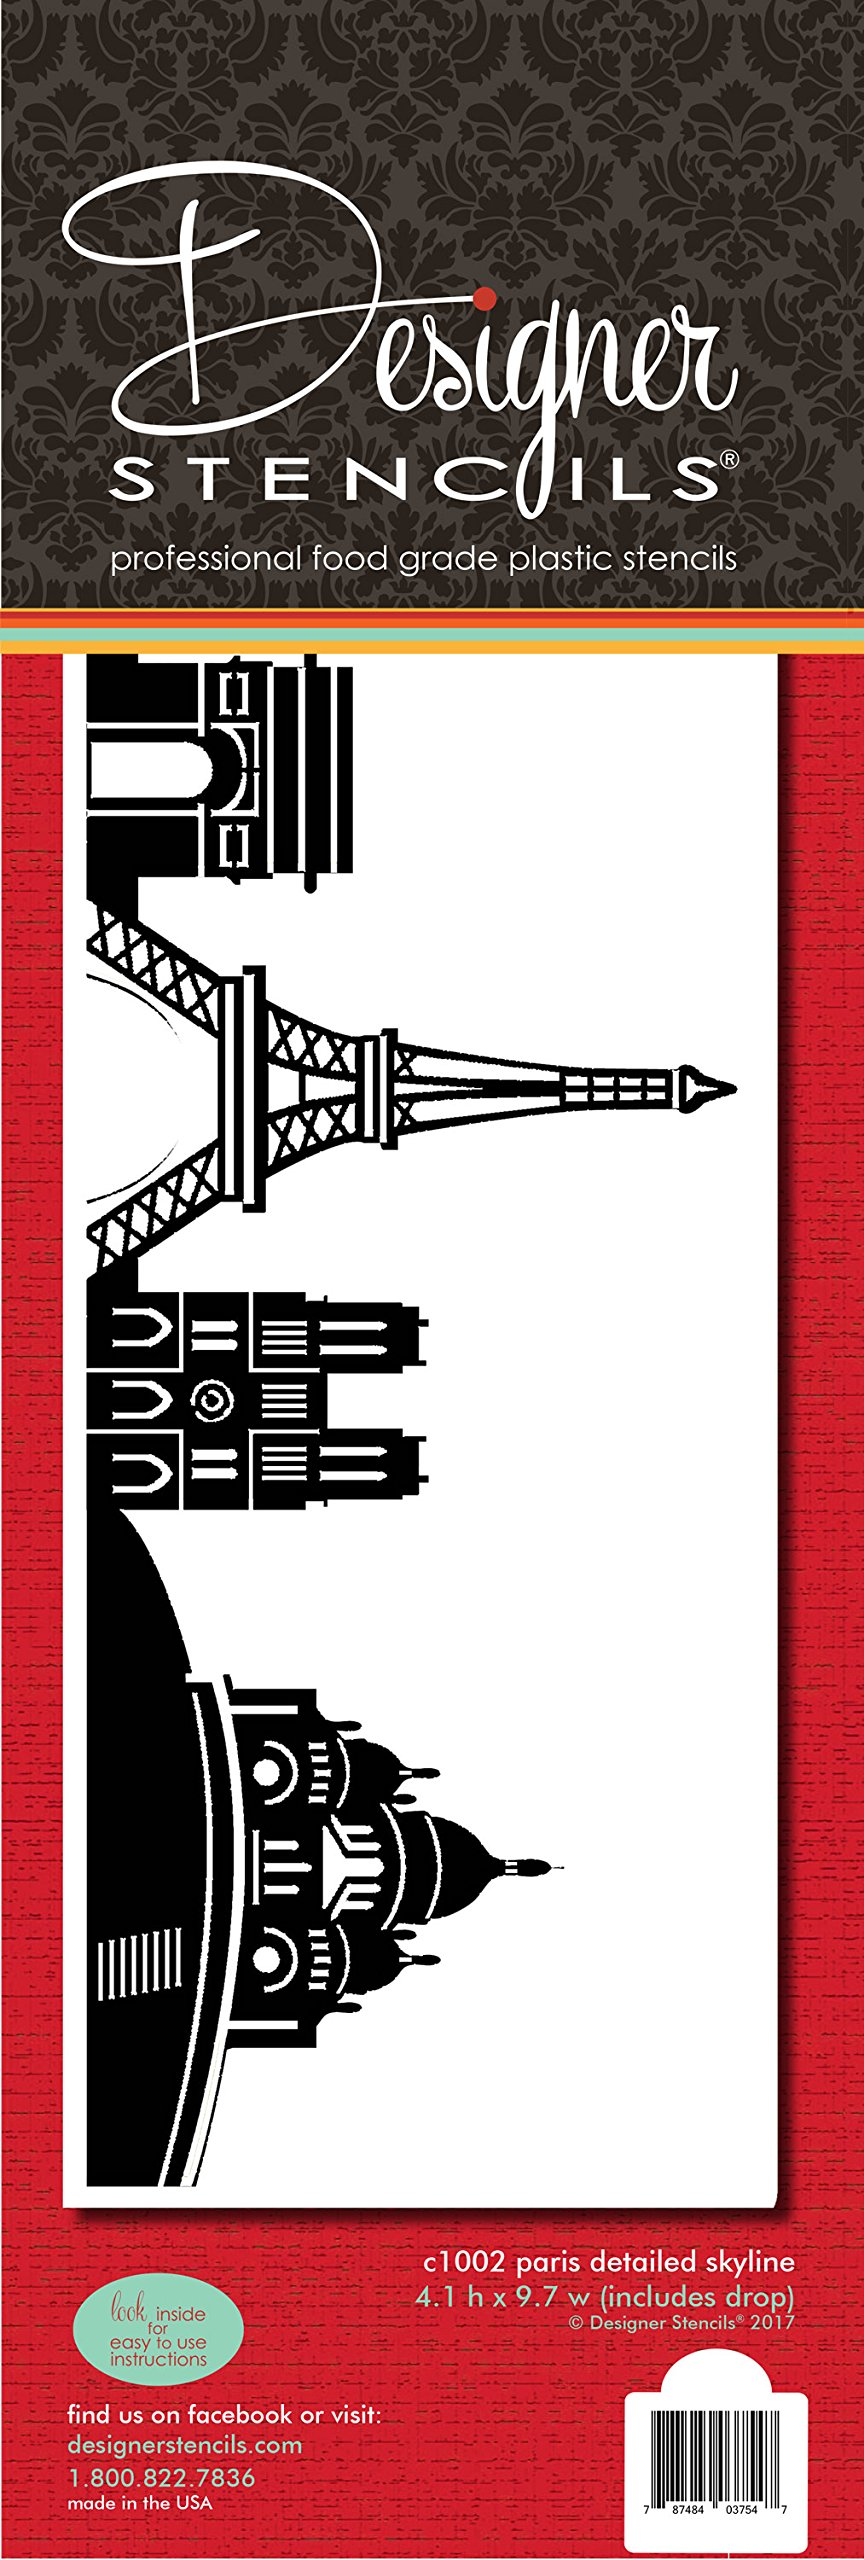 Paris Detailed Skyline Cake Stencil Side C1002 by Designer Stencils